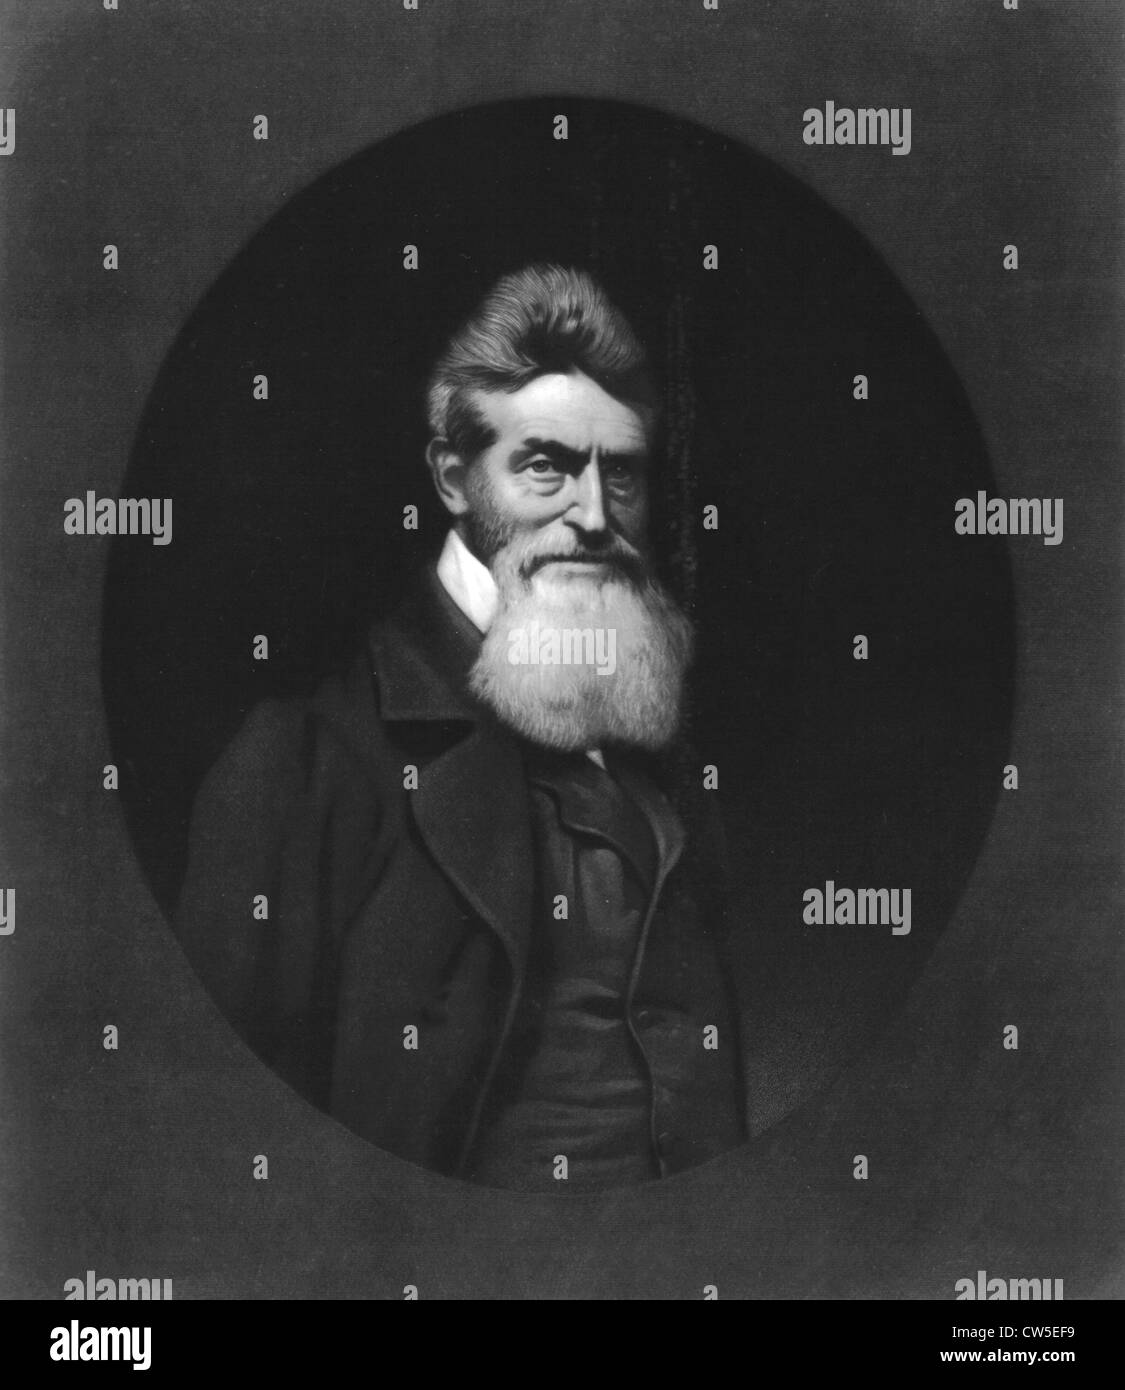 John Brown (1800-1859), slave sentenced to death and hung - Stock Image